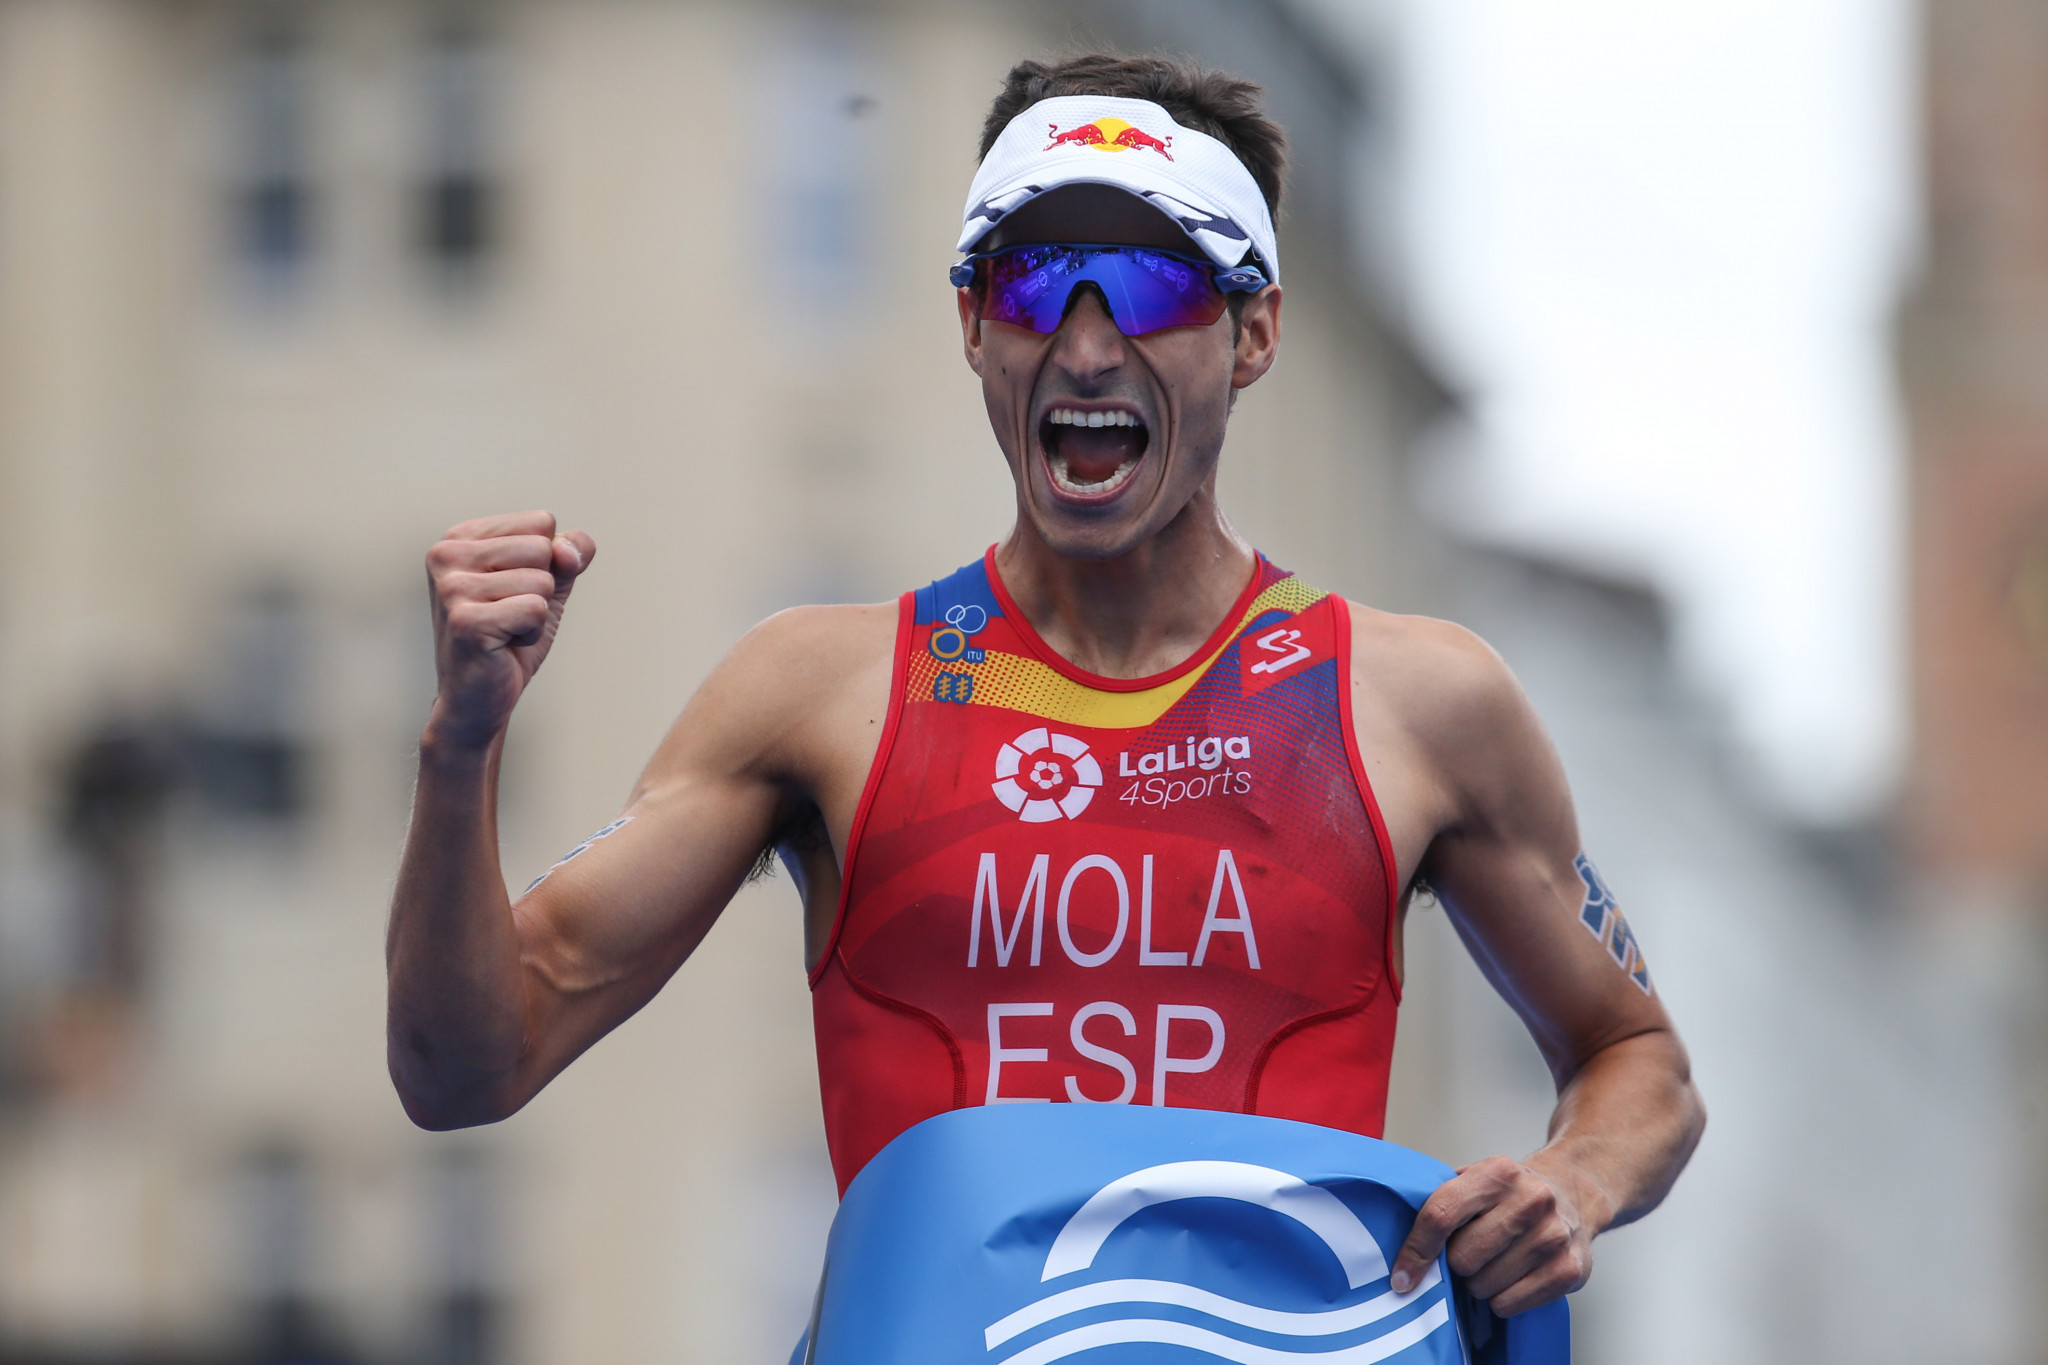 Mola eyes Montreal World Triathlon Series repeat victory on new-look course